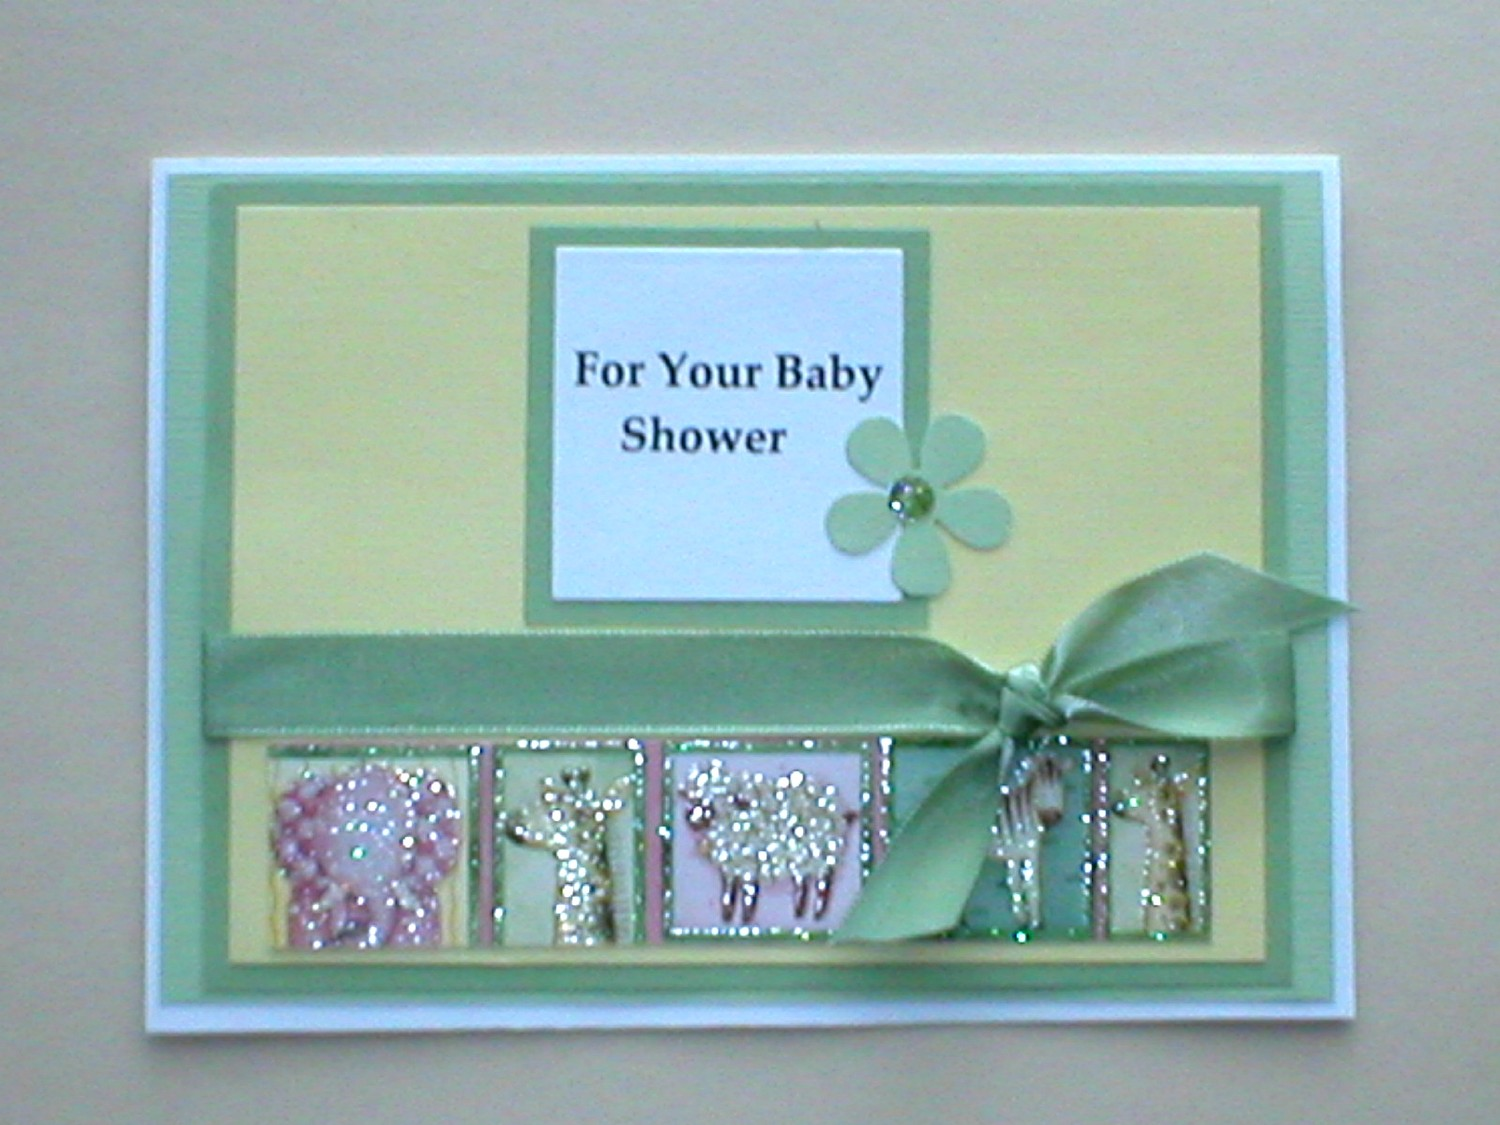 Baby Shower Food Ideas: Baby Shower Ideas Card